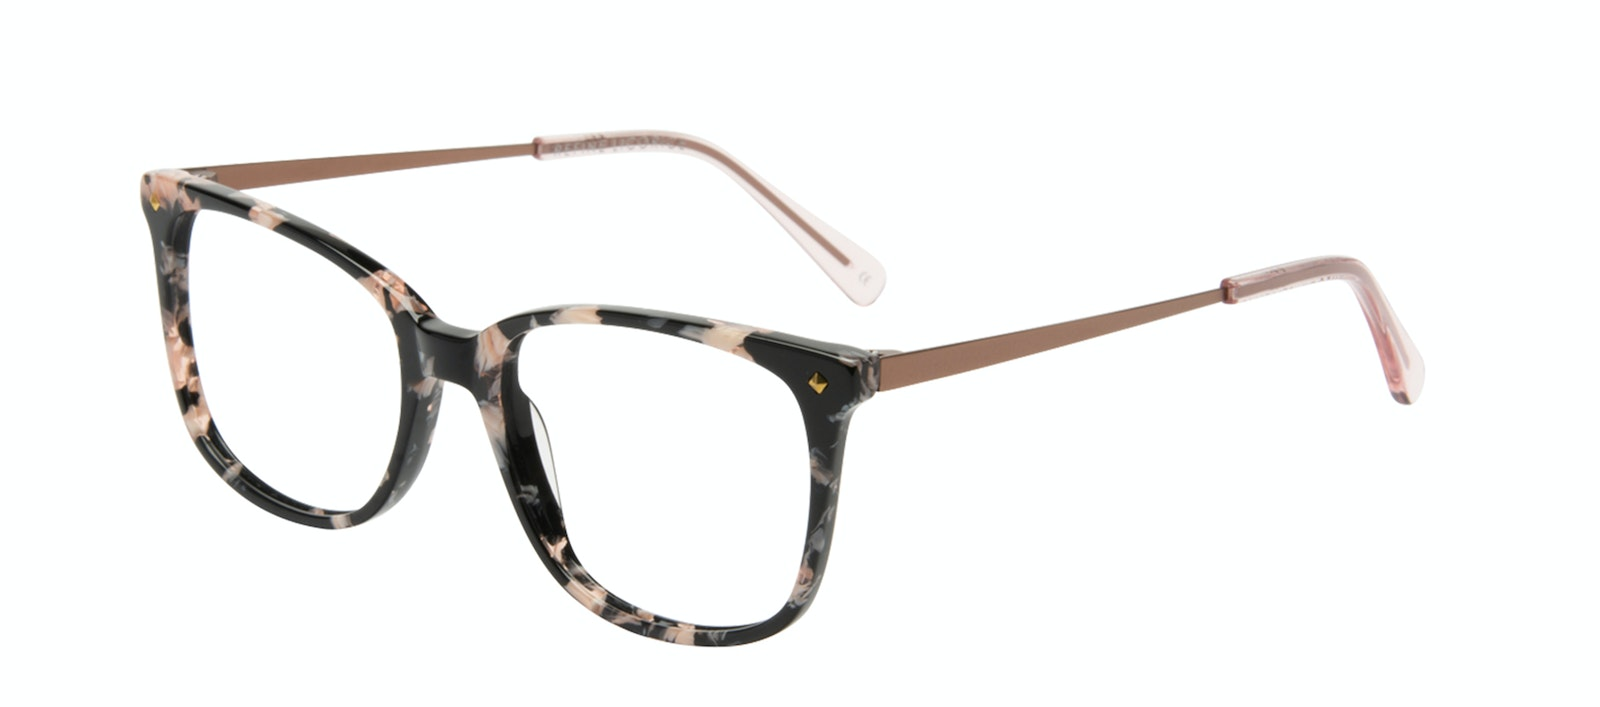 Affordable Fashion Glasses Rectangle Square Eyeglasses Women Refine Licorice Tilt